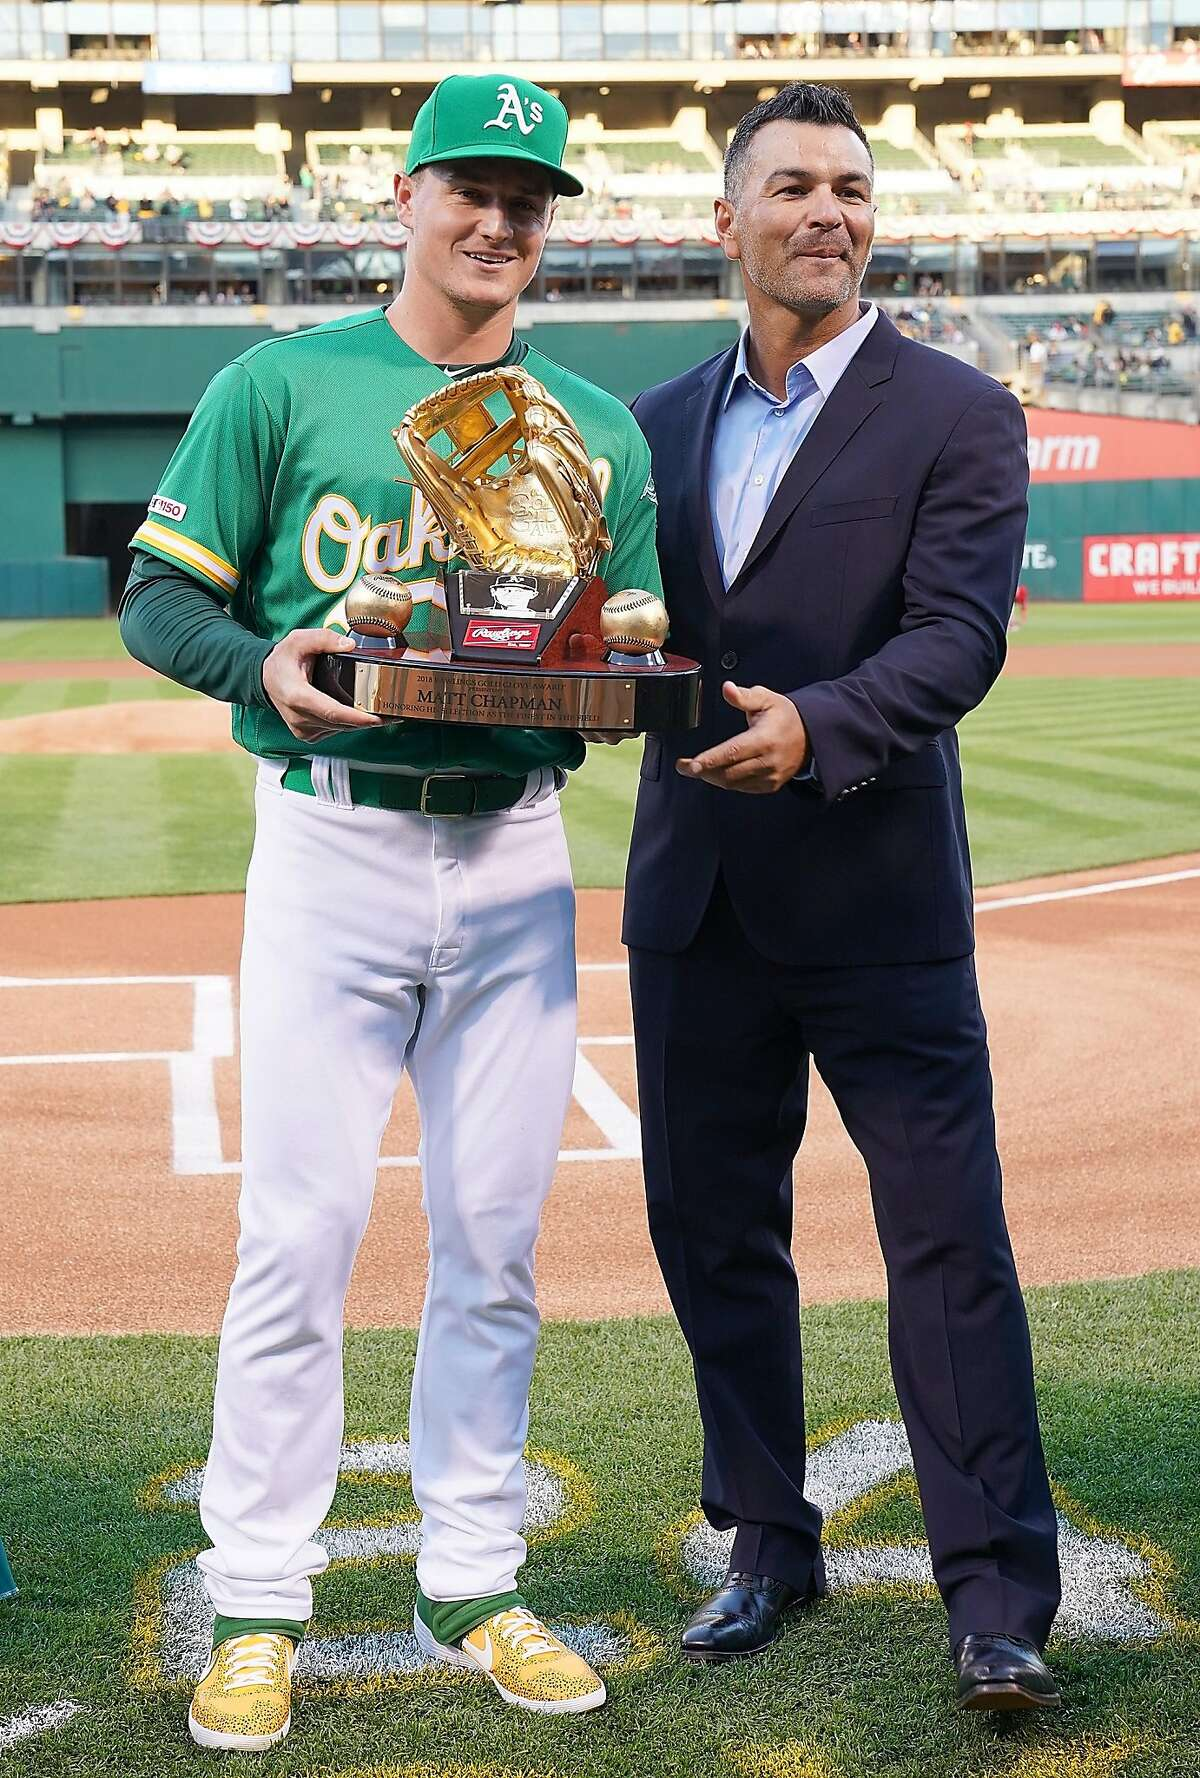 OAKLAND, CA - MARCH 29: Matt Chapman #26 of the Oakland Athletics is presented with his Rawlings 2018 Gold Glove Award by former Oakland Athletics gold glover Eric Chavez prior to the start of his game against the Los Angeles Angels of Anaheim at Oakland-Alameda County Coliseum on March 29, 2019 in Oakland, California. (Photo by Thearon W. Henderson/Getty Images)